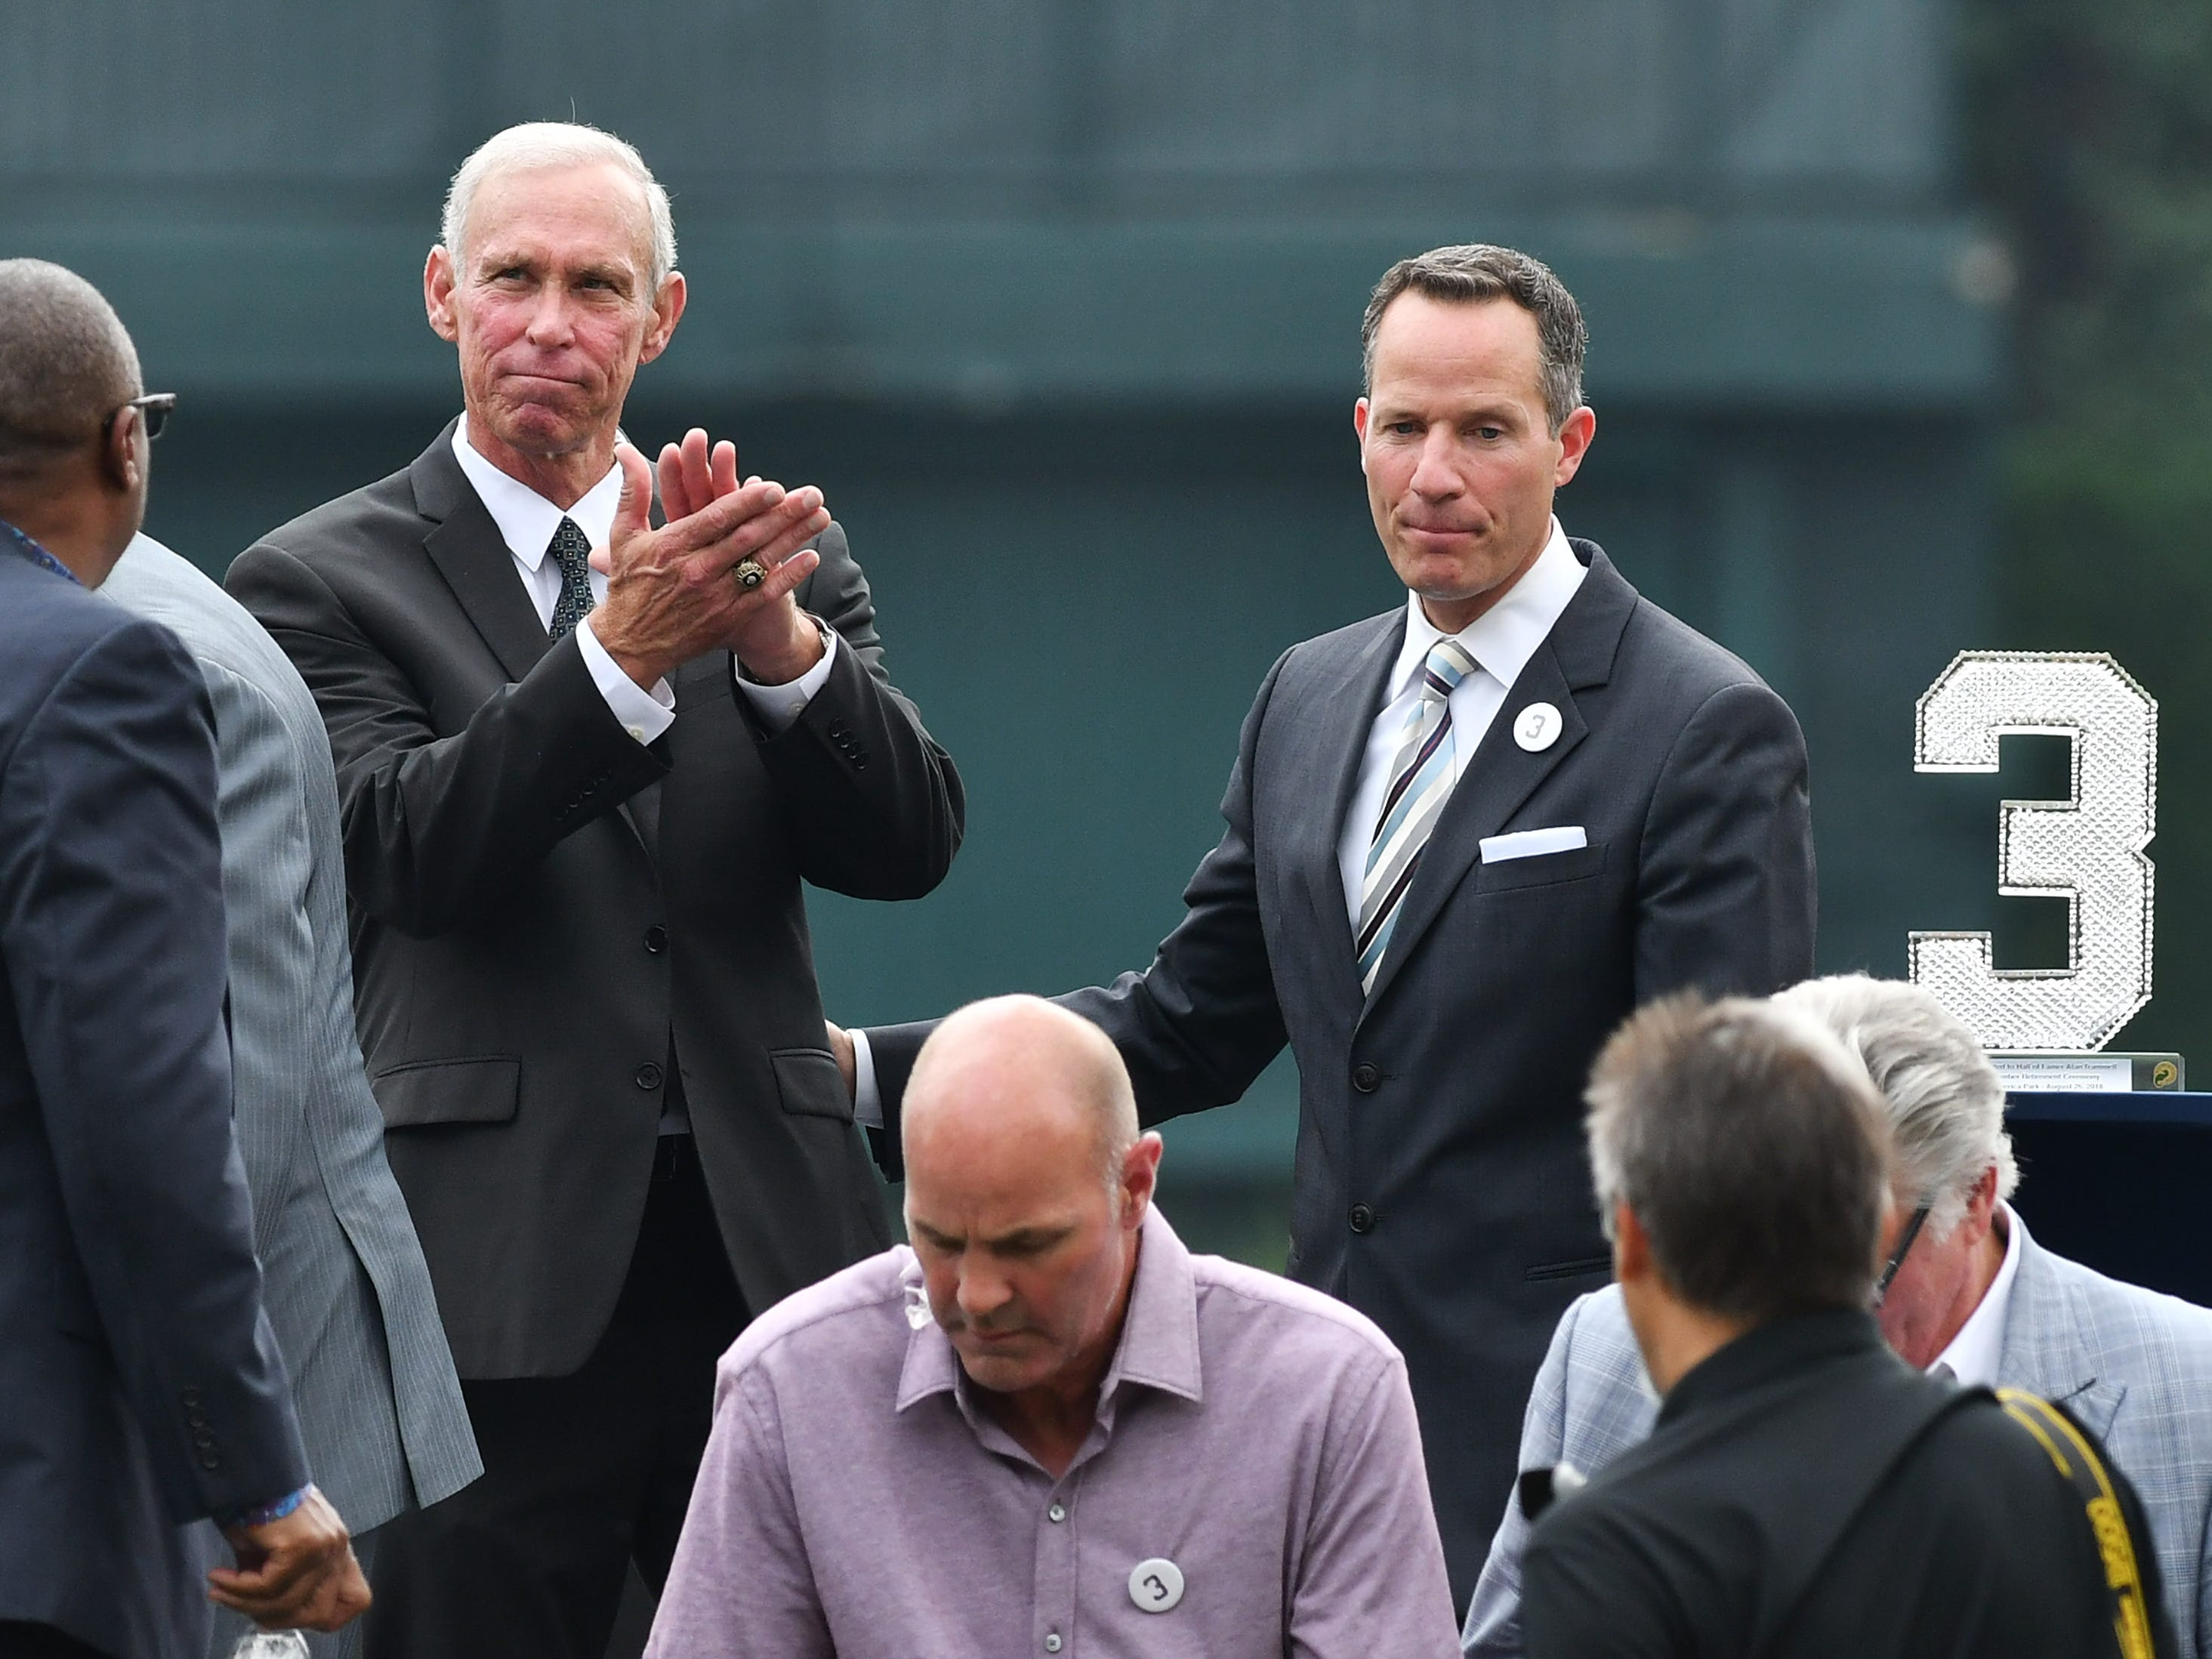 Alan Trammell applauds to fans just after the special pregame ceremony next to Chris Ilitch, president and CEO of Ilitch Holdings, Inc.